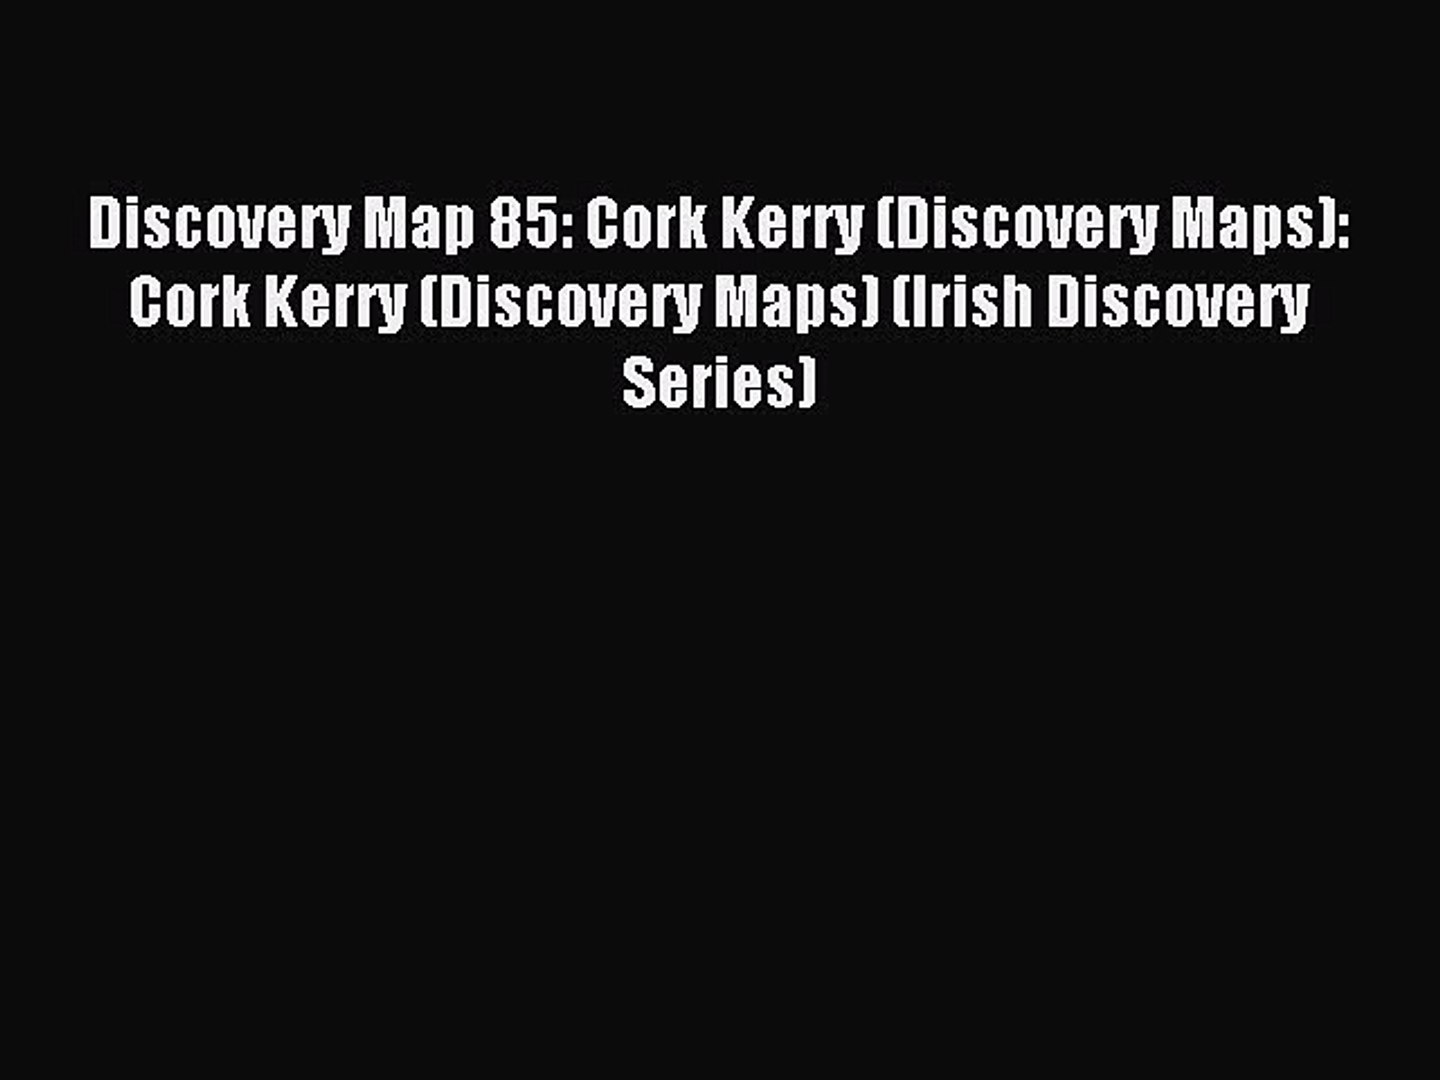 Read Discovery Map 85: Cork Kerry (Discovery Maps): Cork Kerry (Discovery Maps) (Irish Discovery